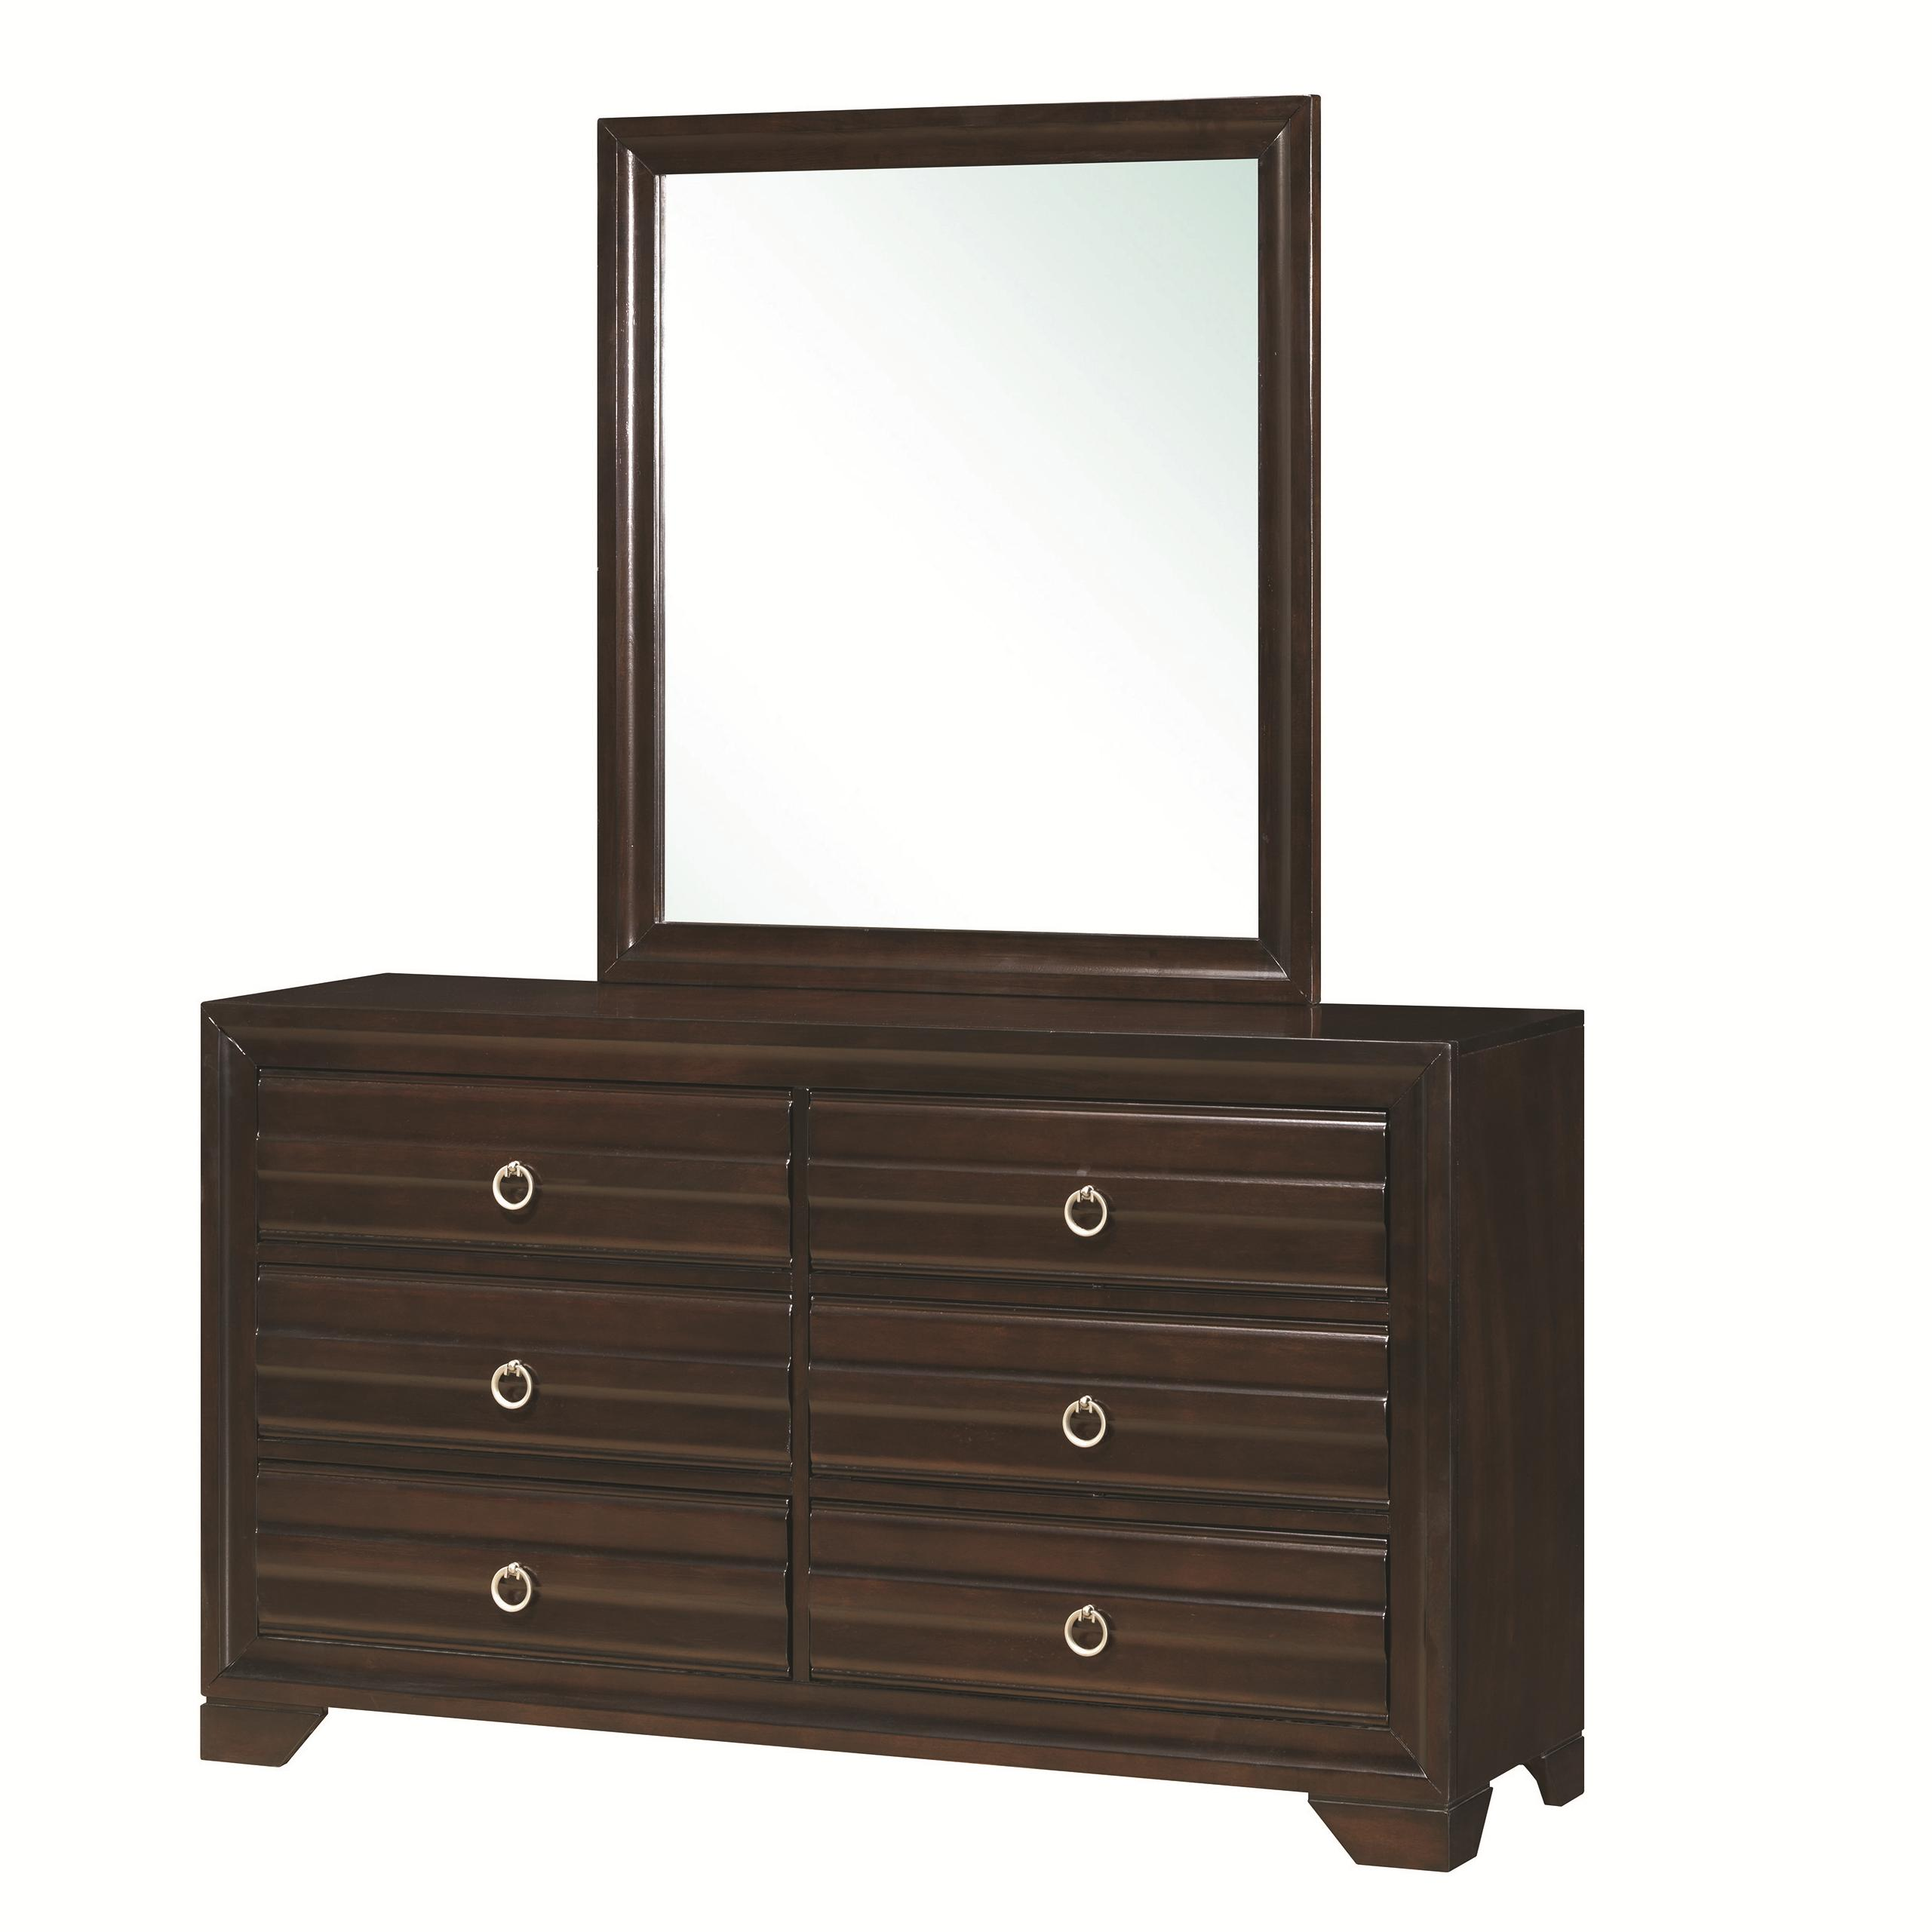 Coaster Bryce 20347 Dresser and Mirror Combo - Item Number: 203473+203474